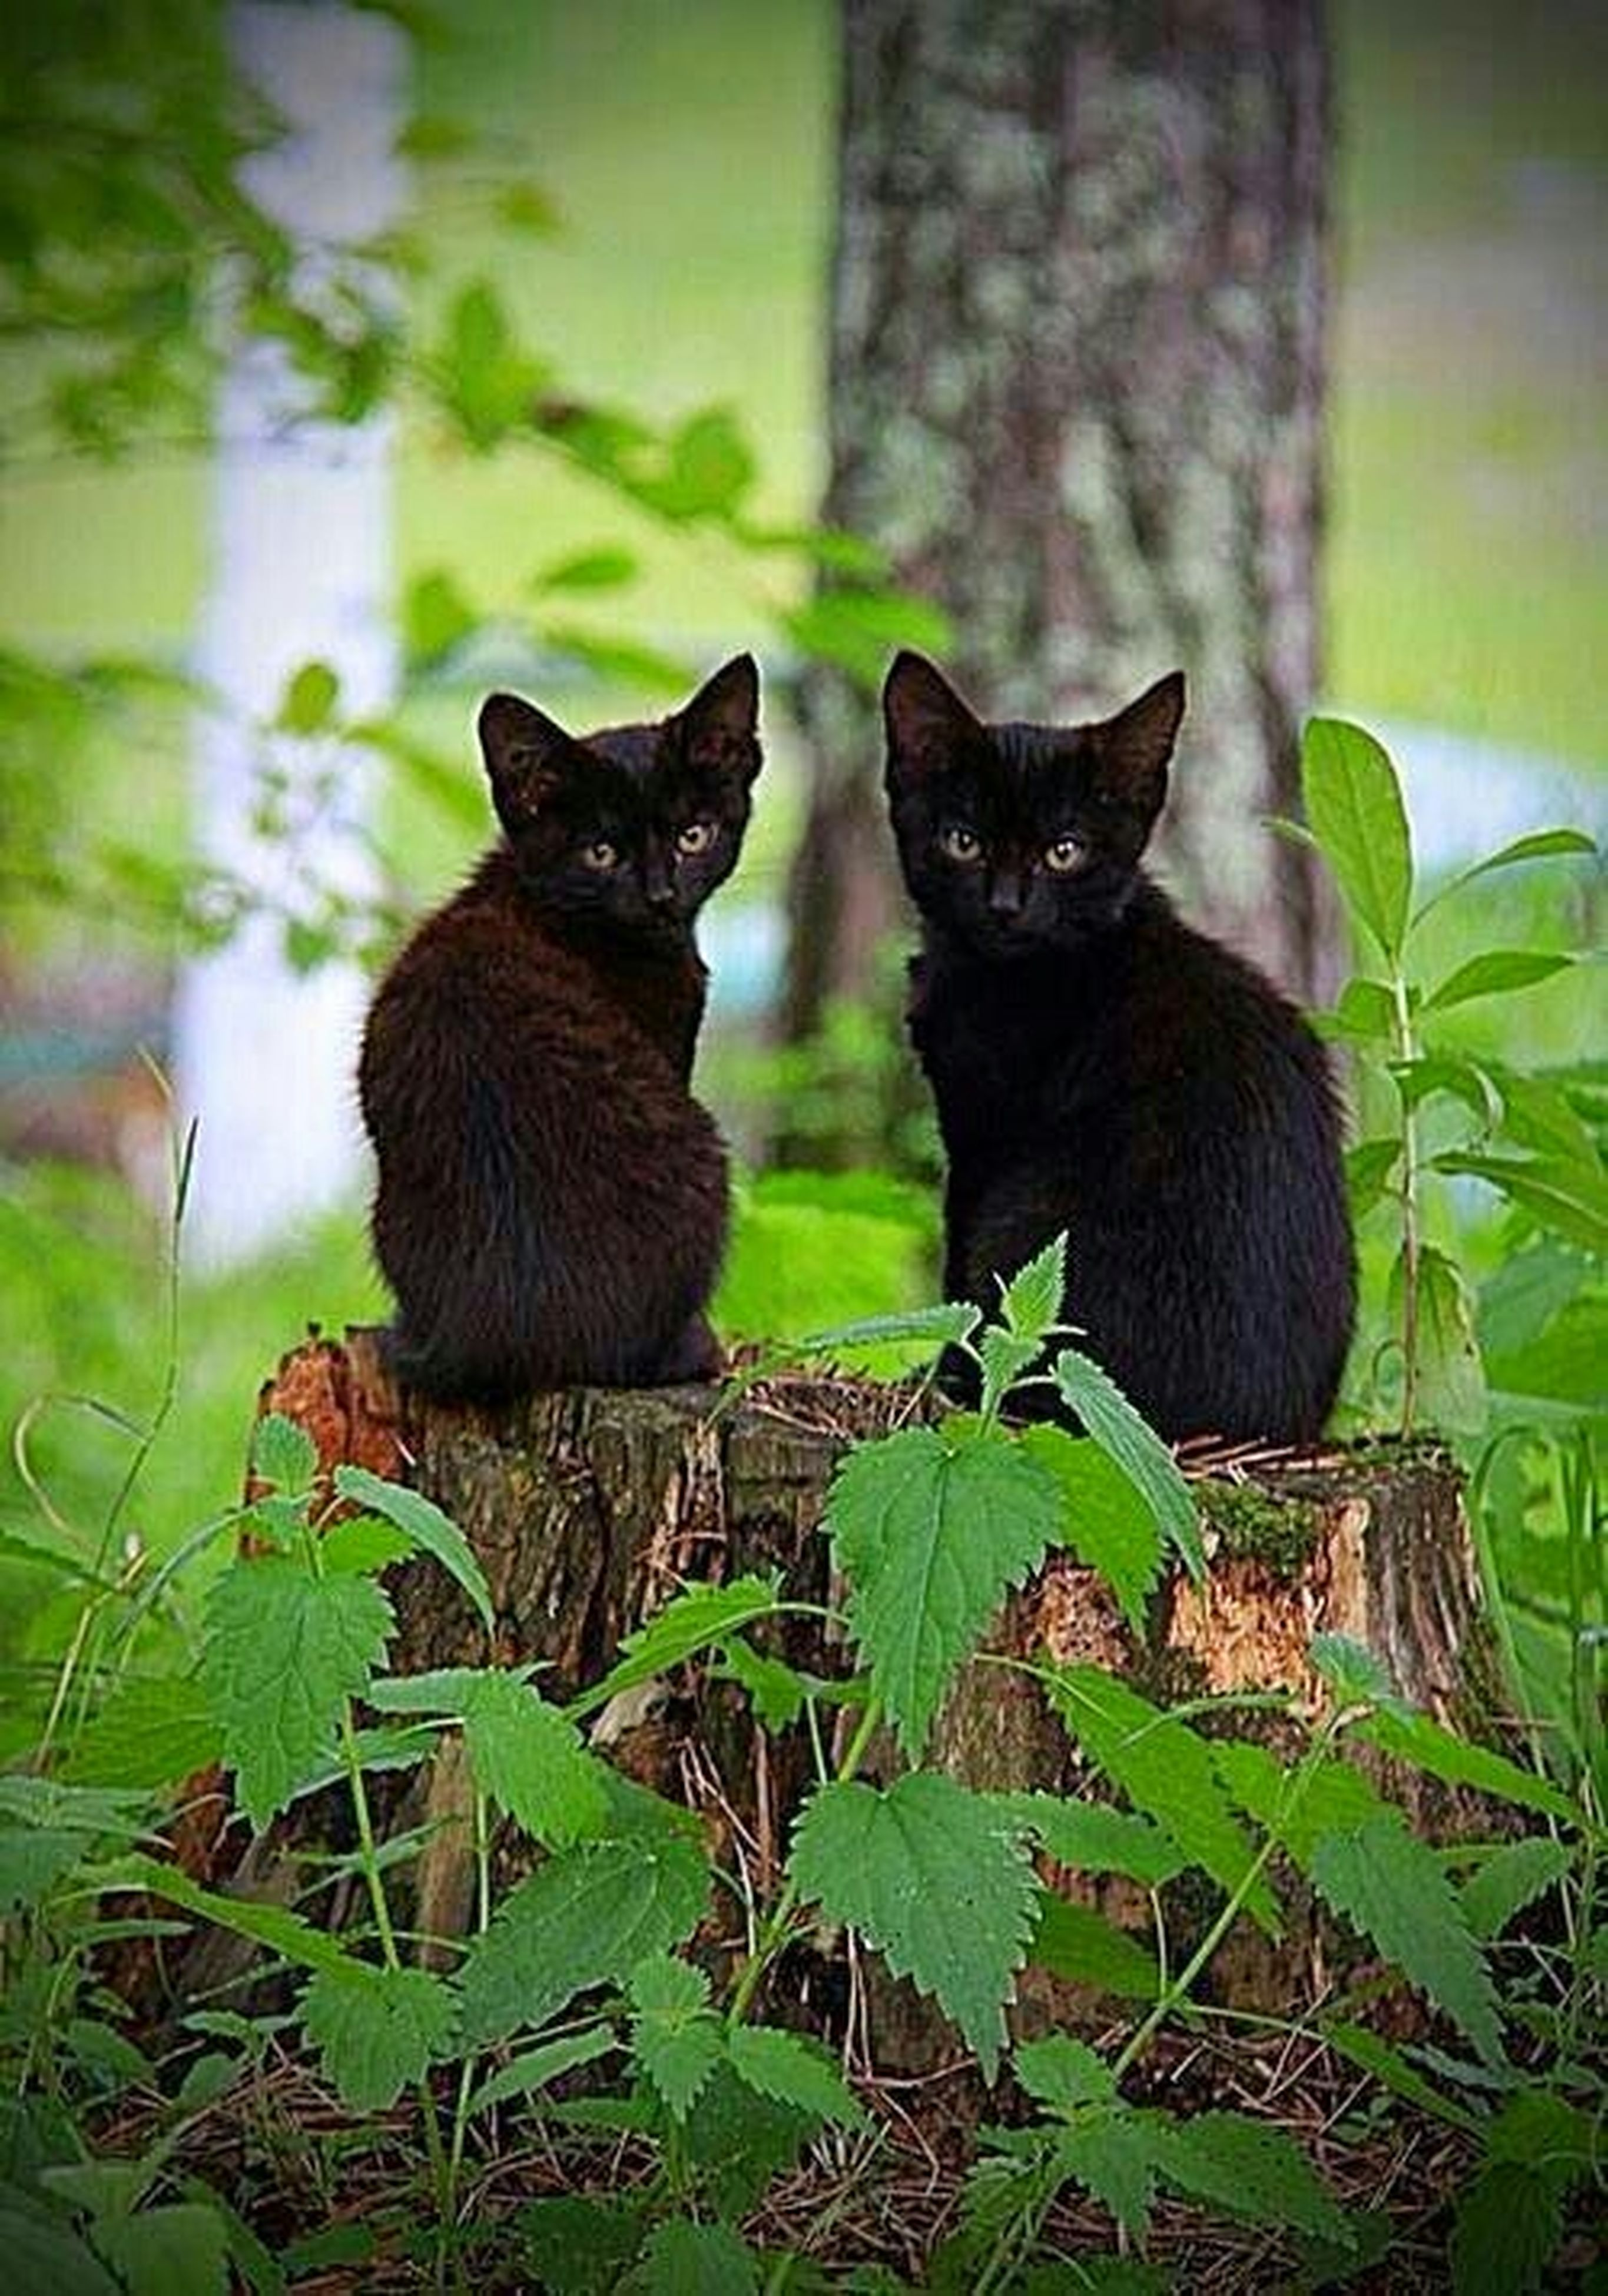 animal themes, one animal, domestic cat, cat, pets, feline, mammal, domestic animals, sitting, whisker, looking at camera, portrait, black color, relaxation, alertness, plant, leaf, focus on foreground, staring